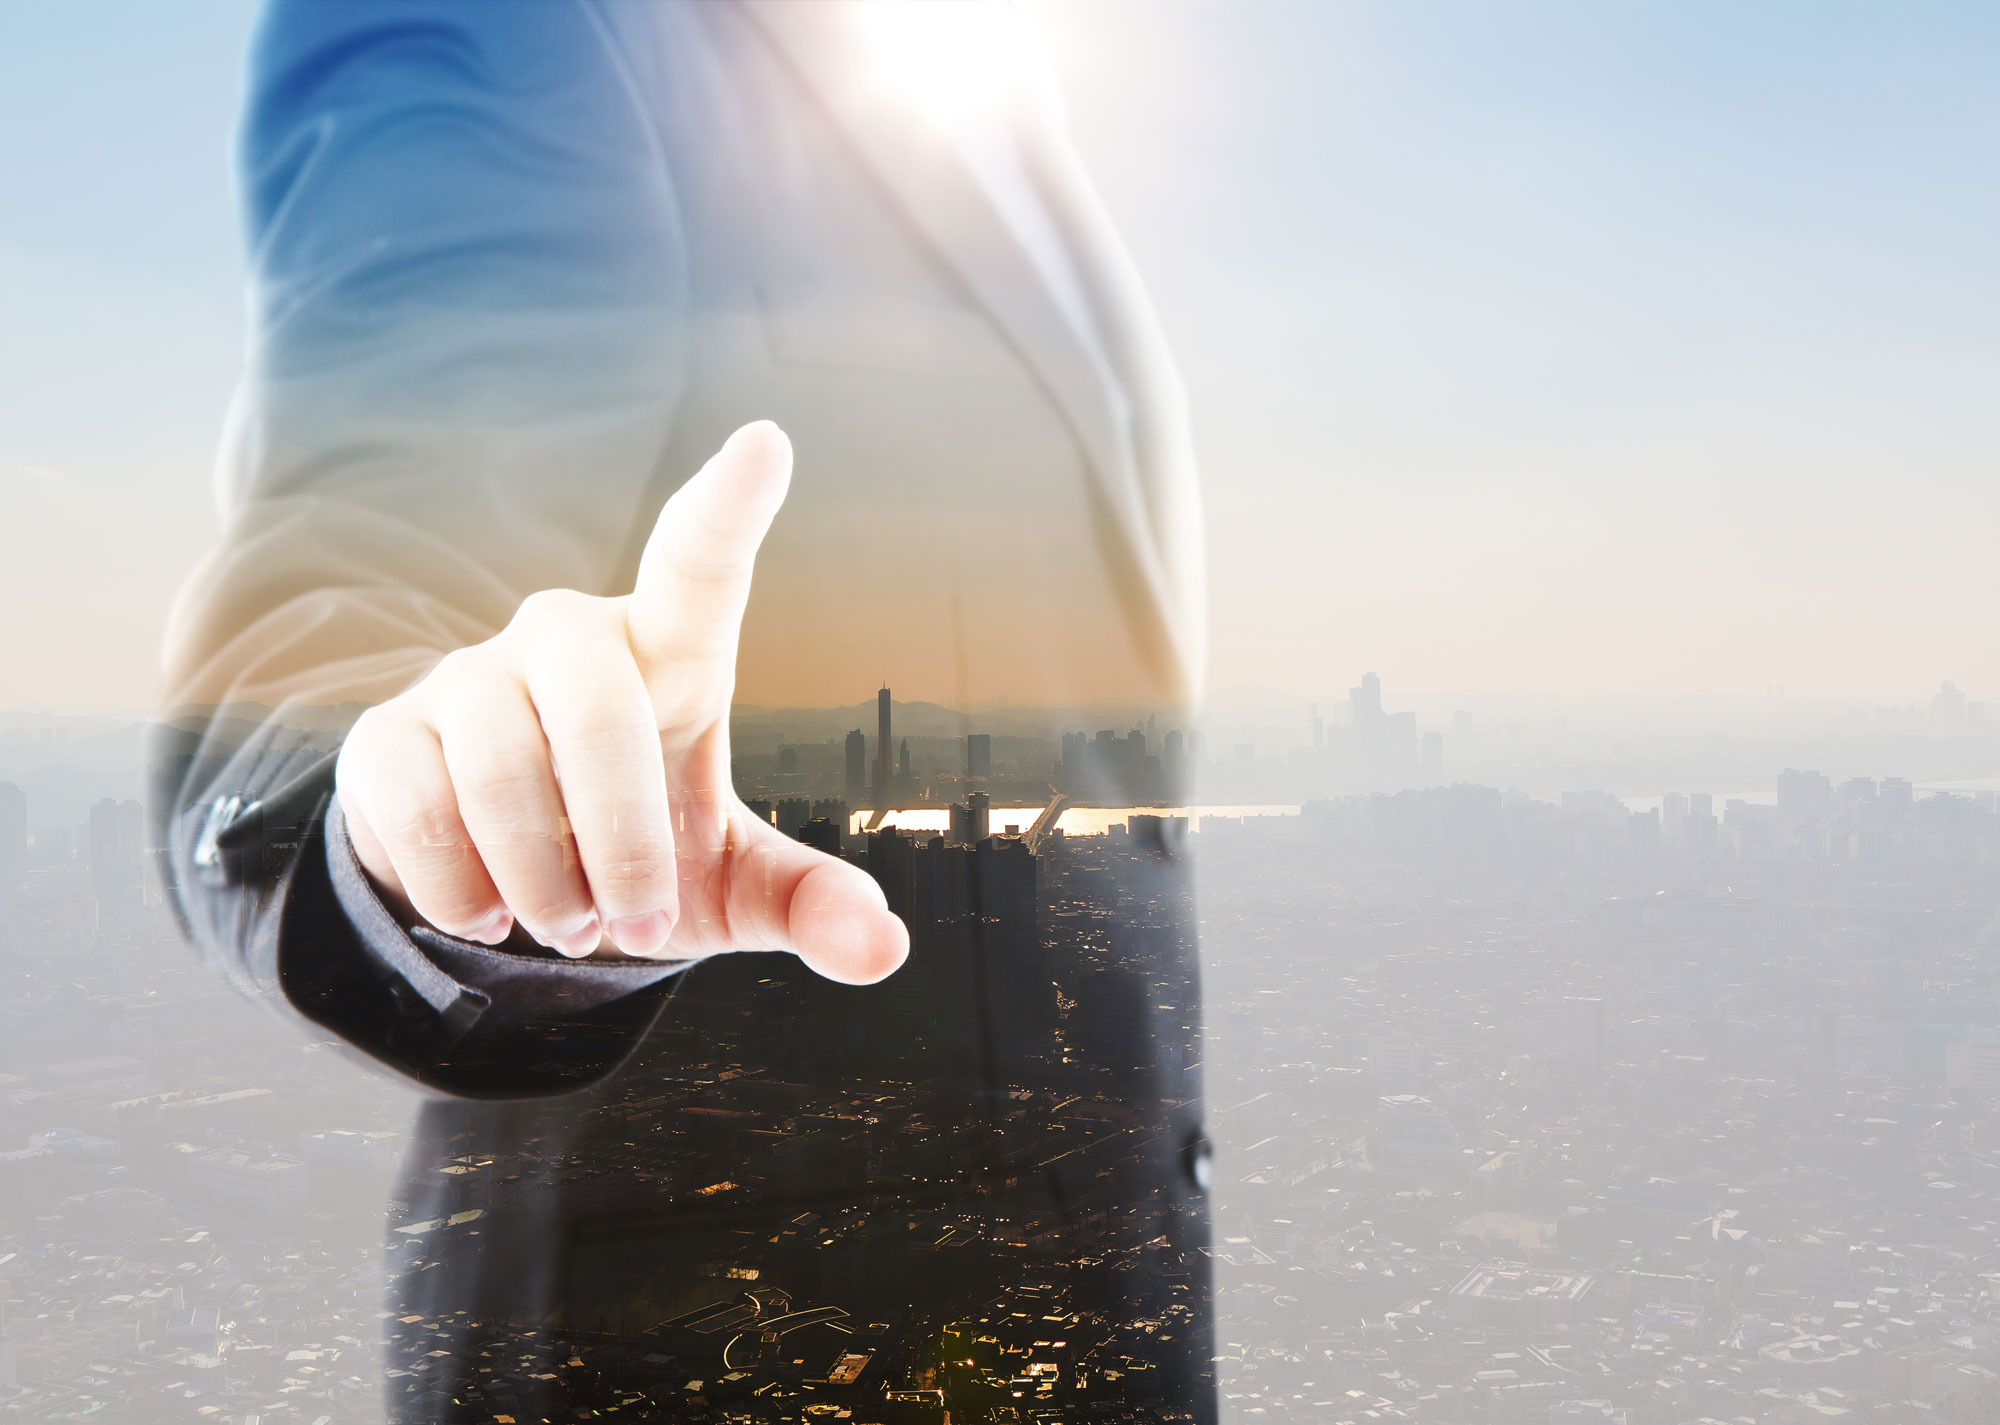 Abstract Double exposure of Business man touching an imaginary s